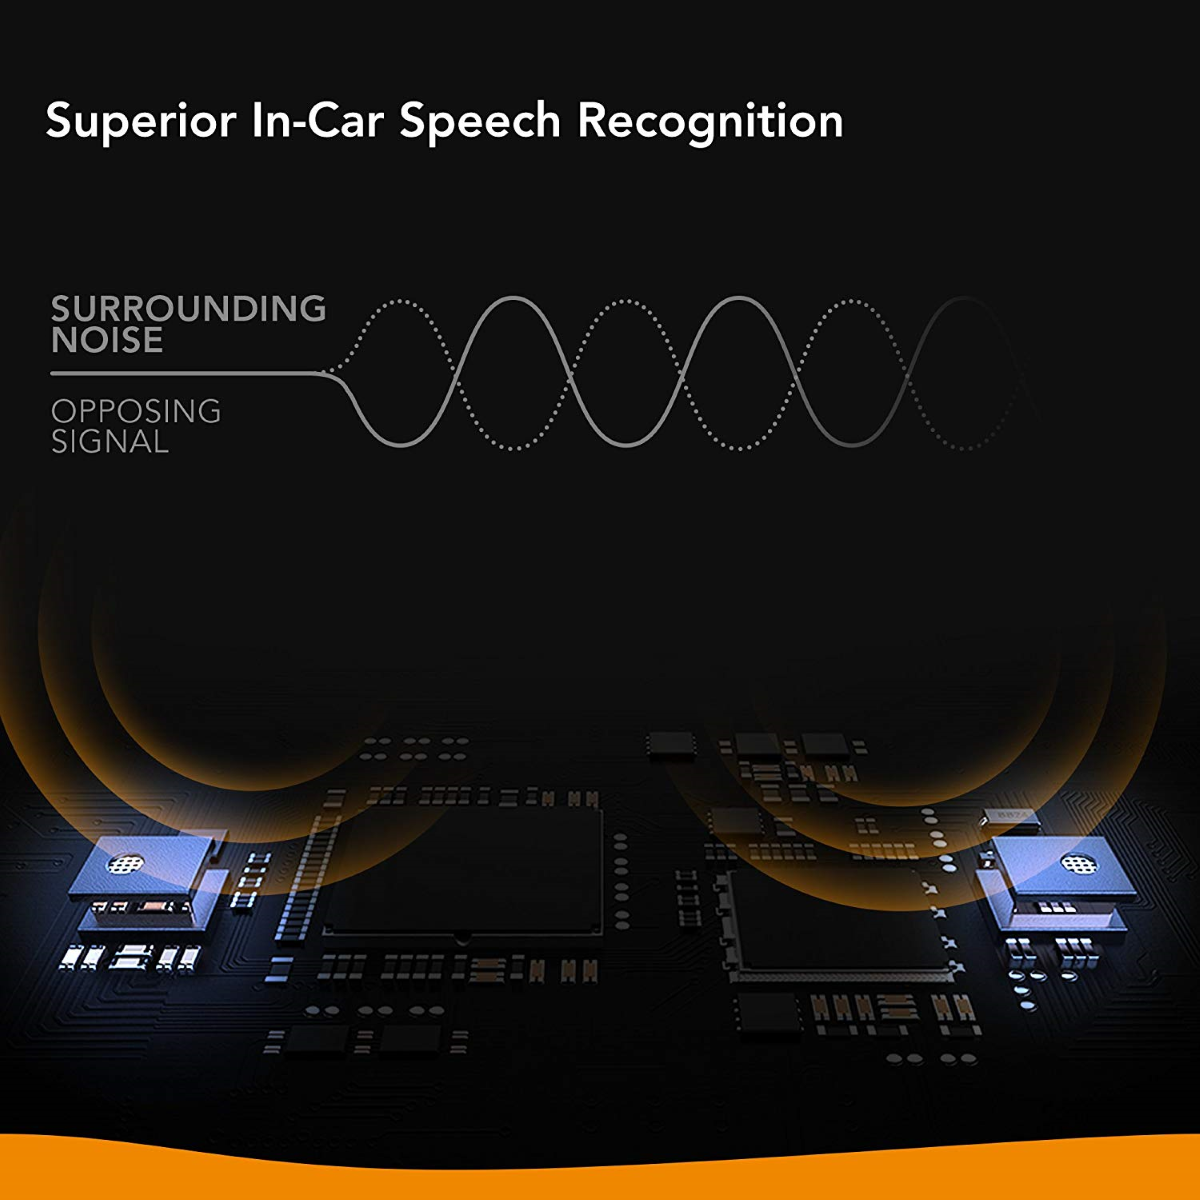 Superior In-Car Speech Recognition - Support to In-Car Sound Isolation with Acoustic Echo Cancellation